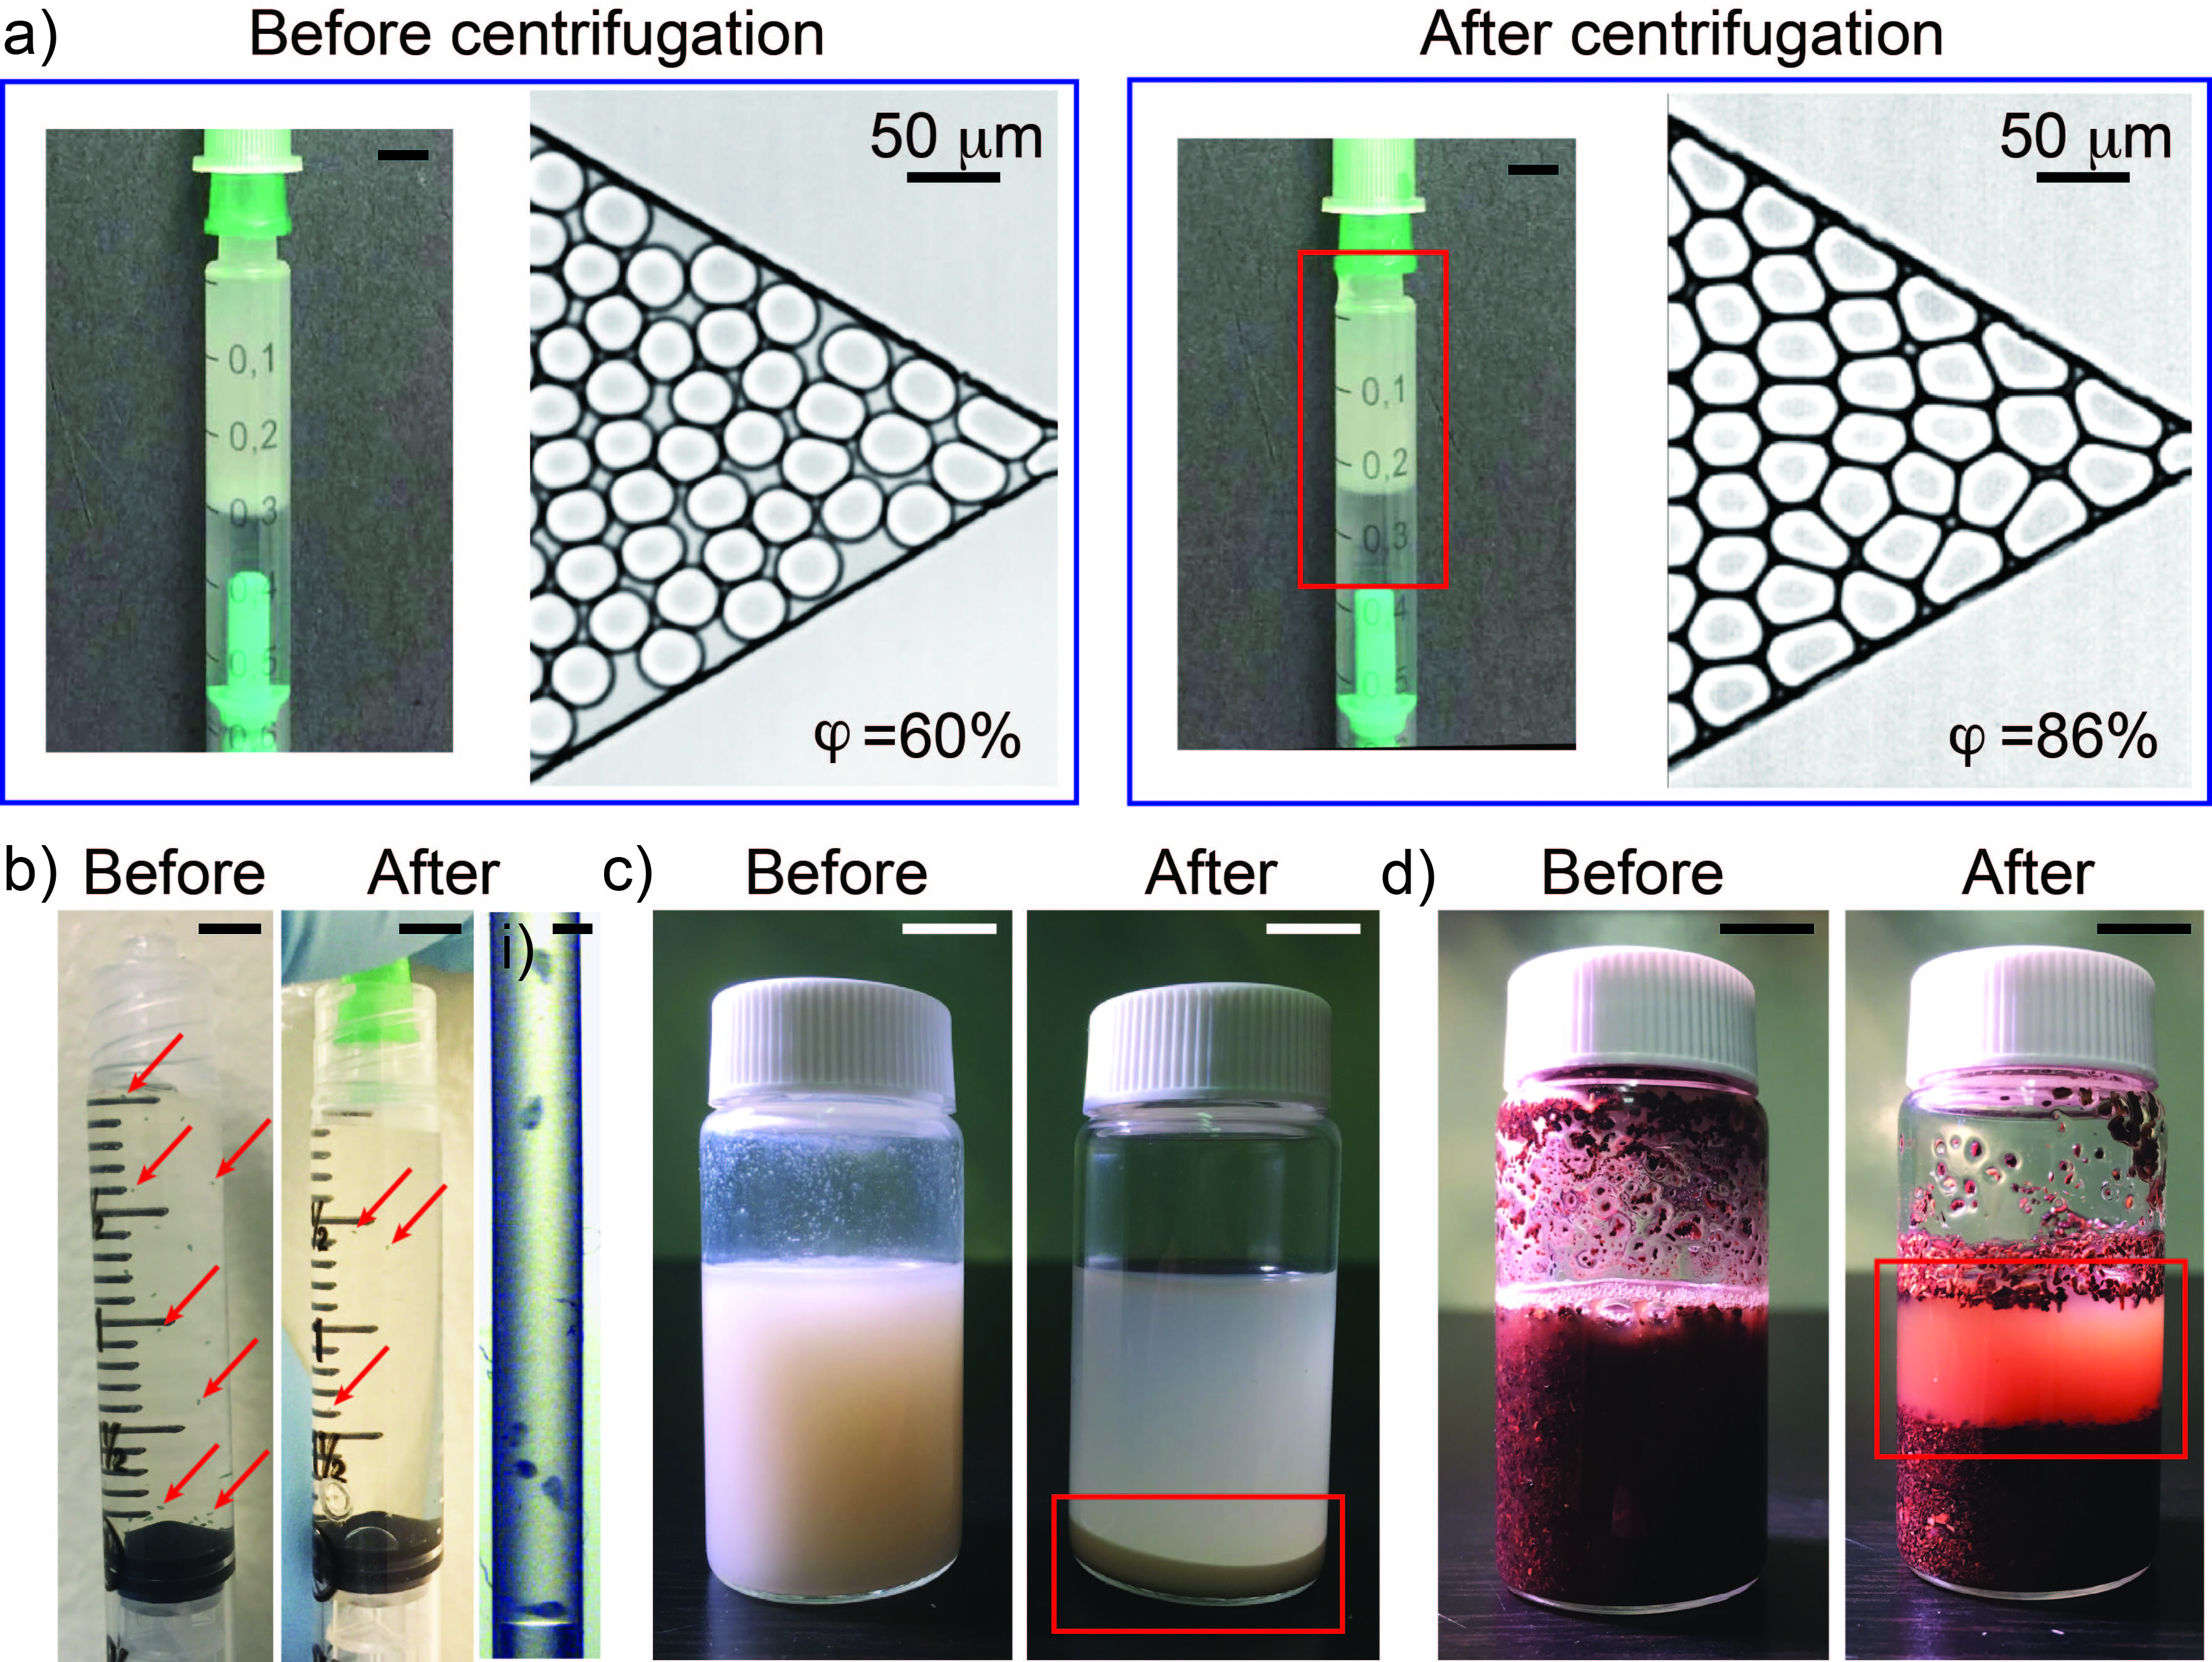 Figure 3 A Photographs Of Emulsion In 1 ML Syringe And Microscopic Images Injected Into Microchannel Before After Centrifugation